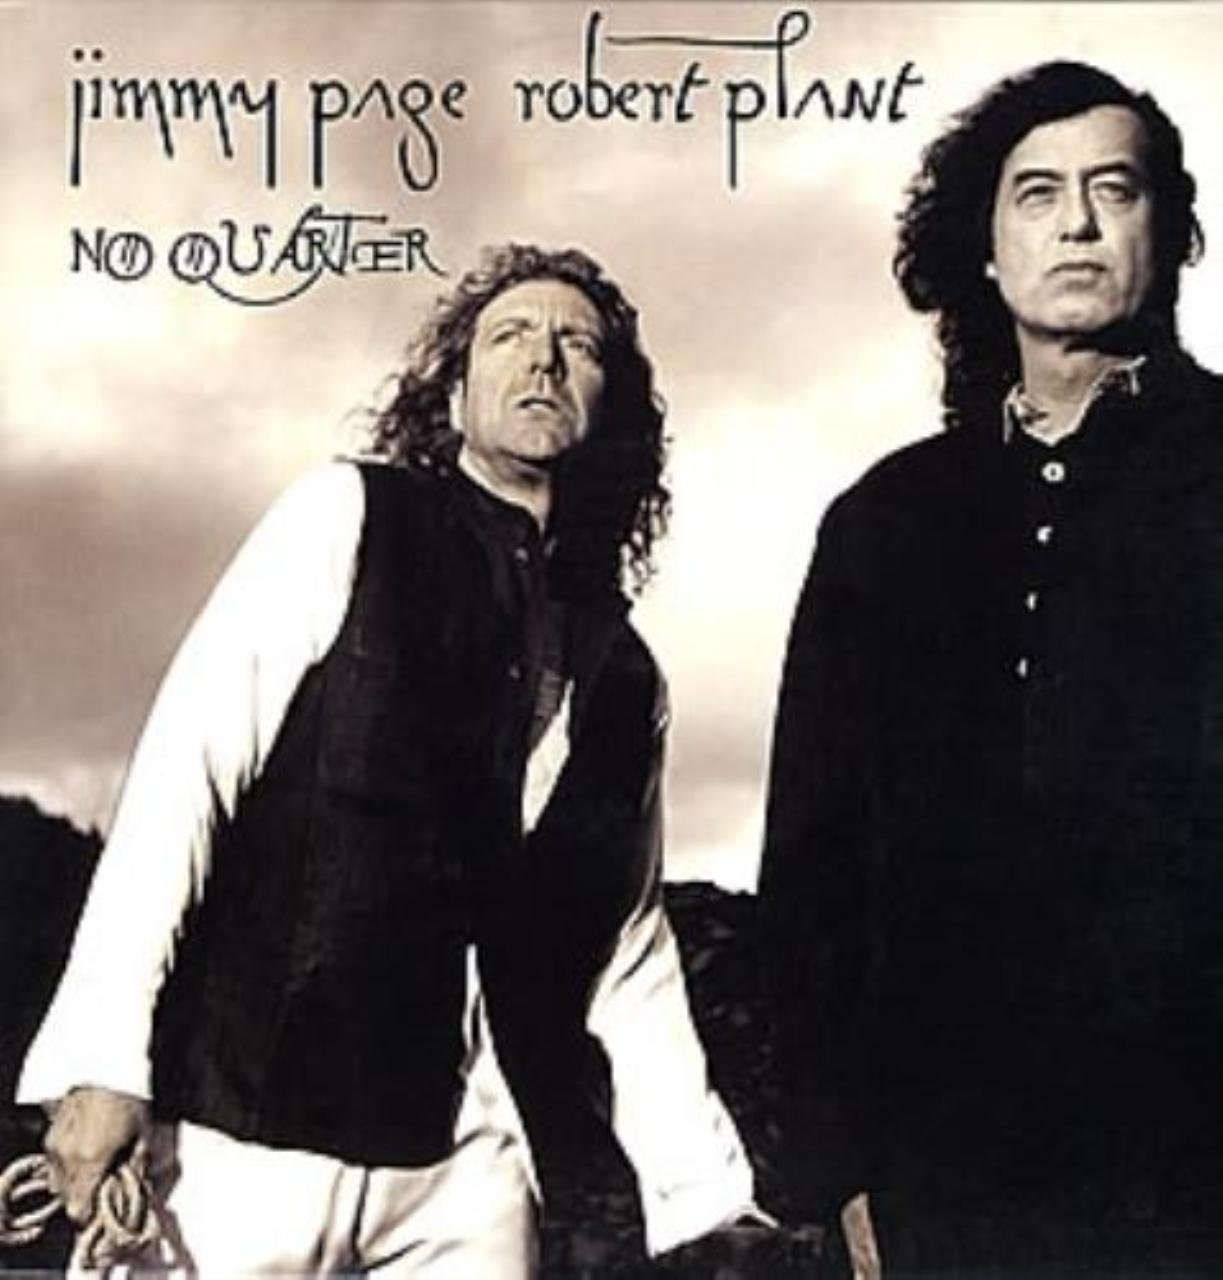 No Quarter: Jimmy Page & Robert Plant Unledded [Vinyl]